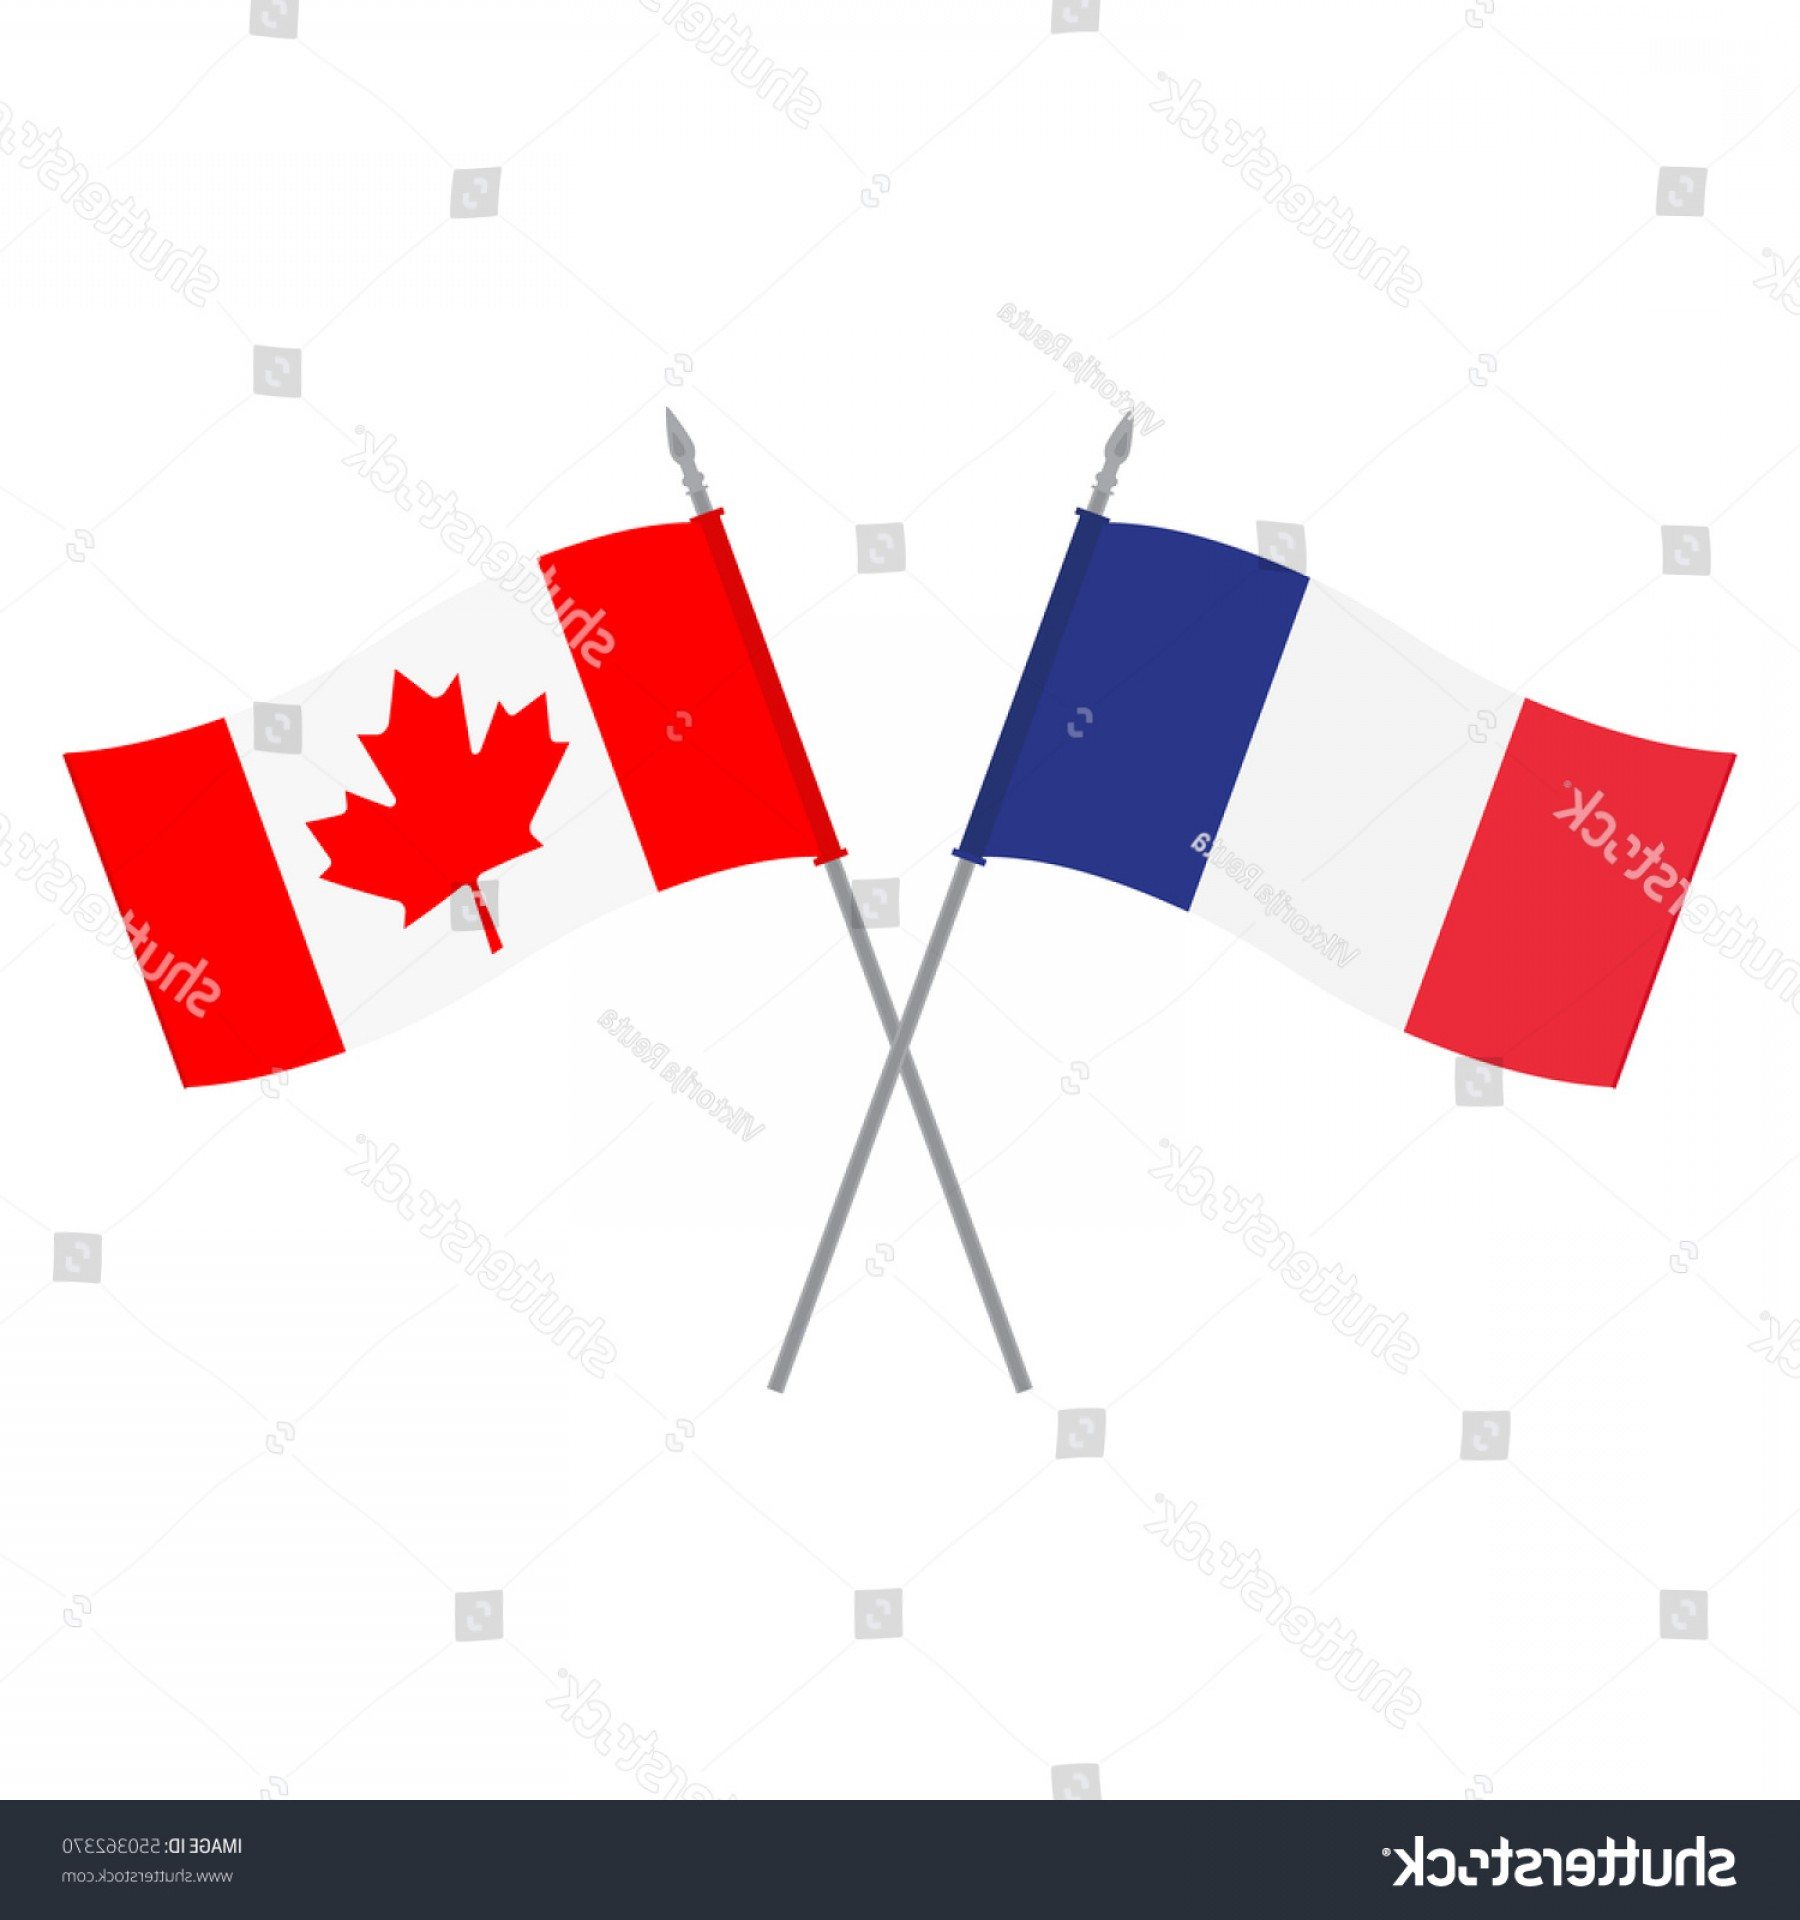 1800x1920 Vector Illustration Canadian French Flag Flags Lazttweet